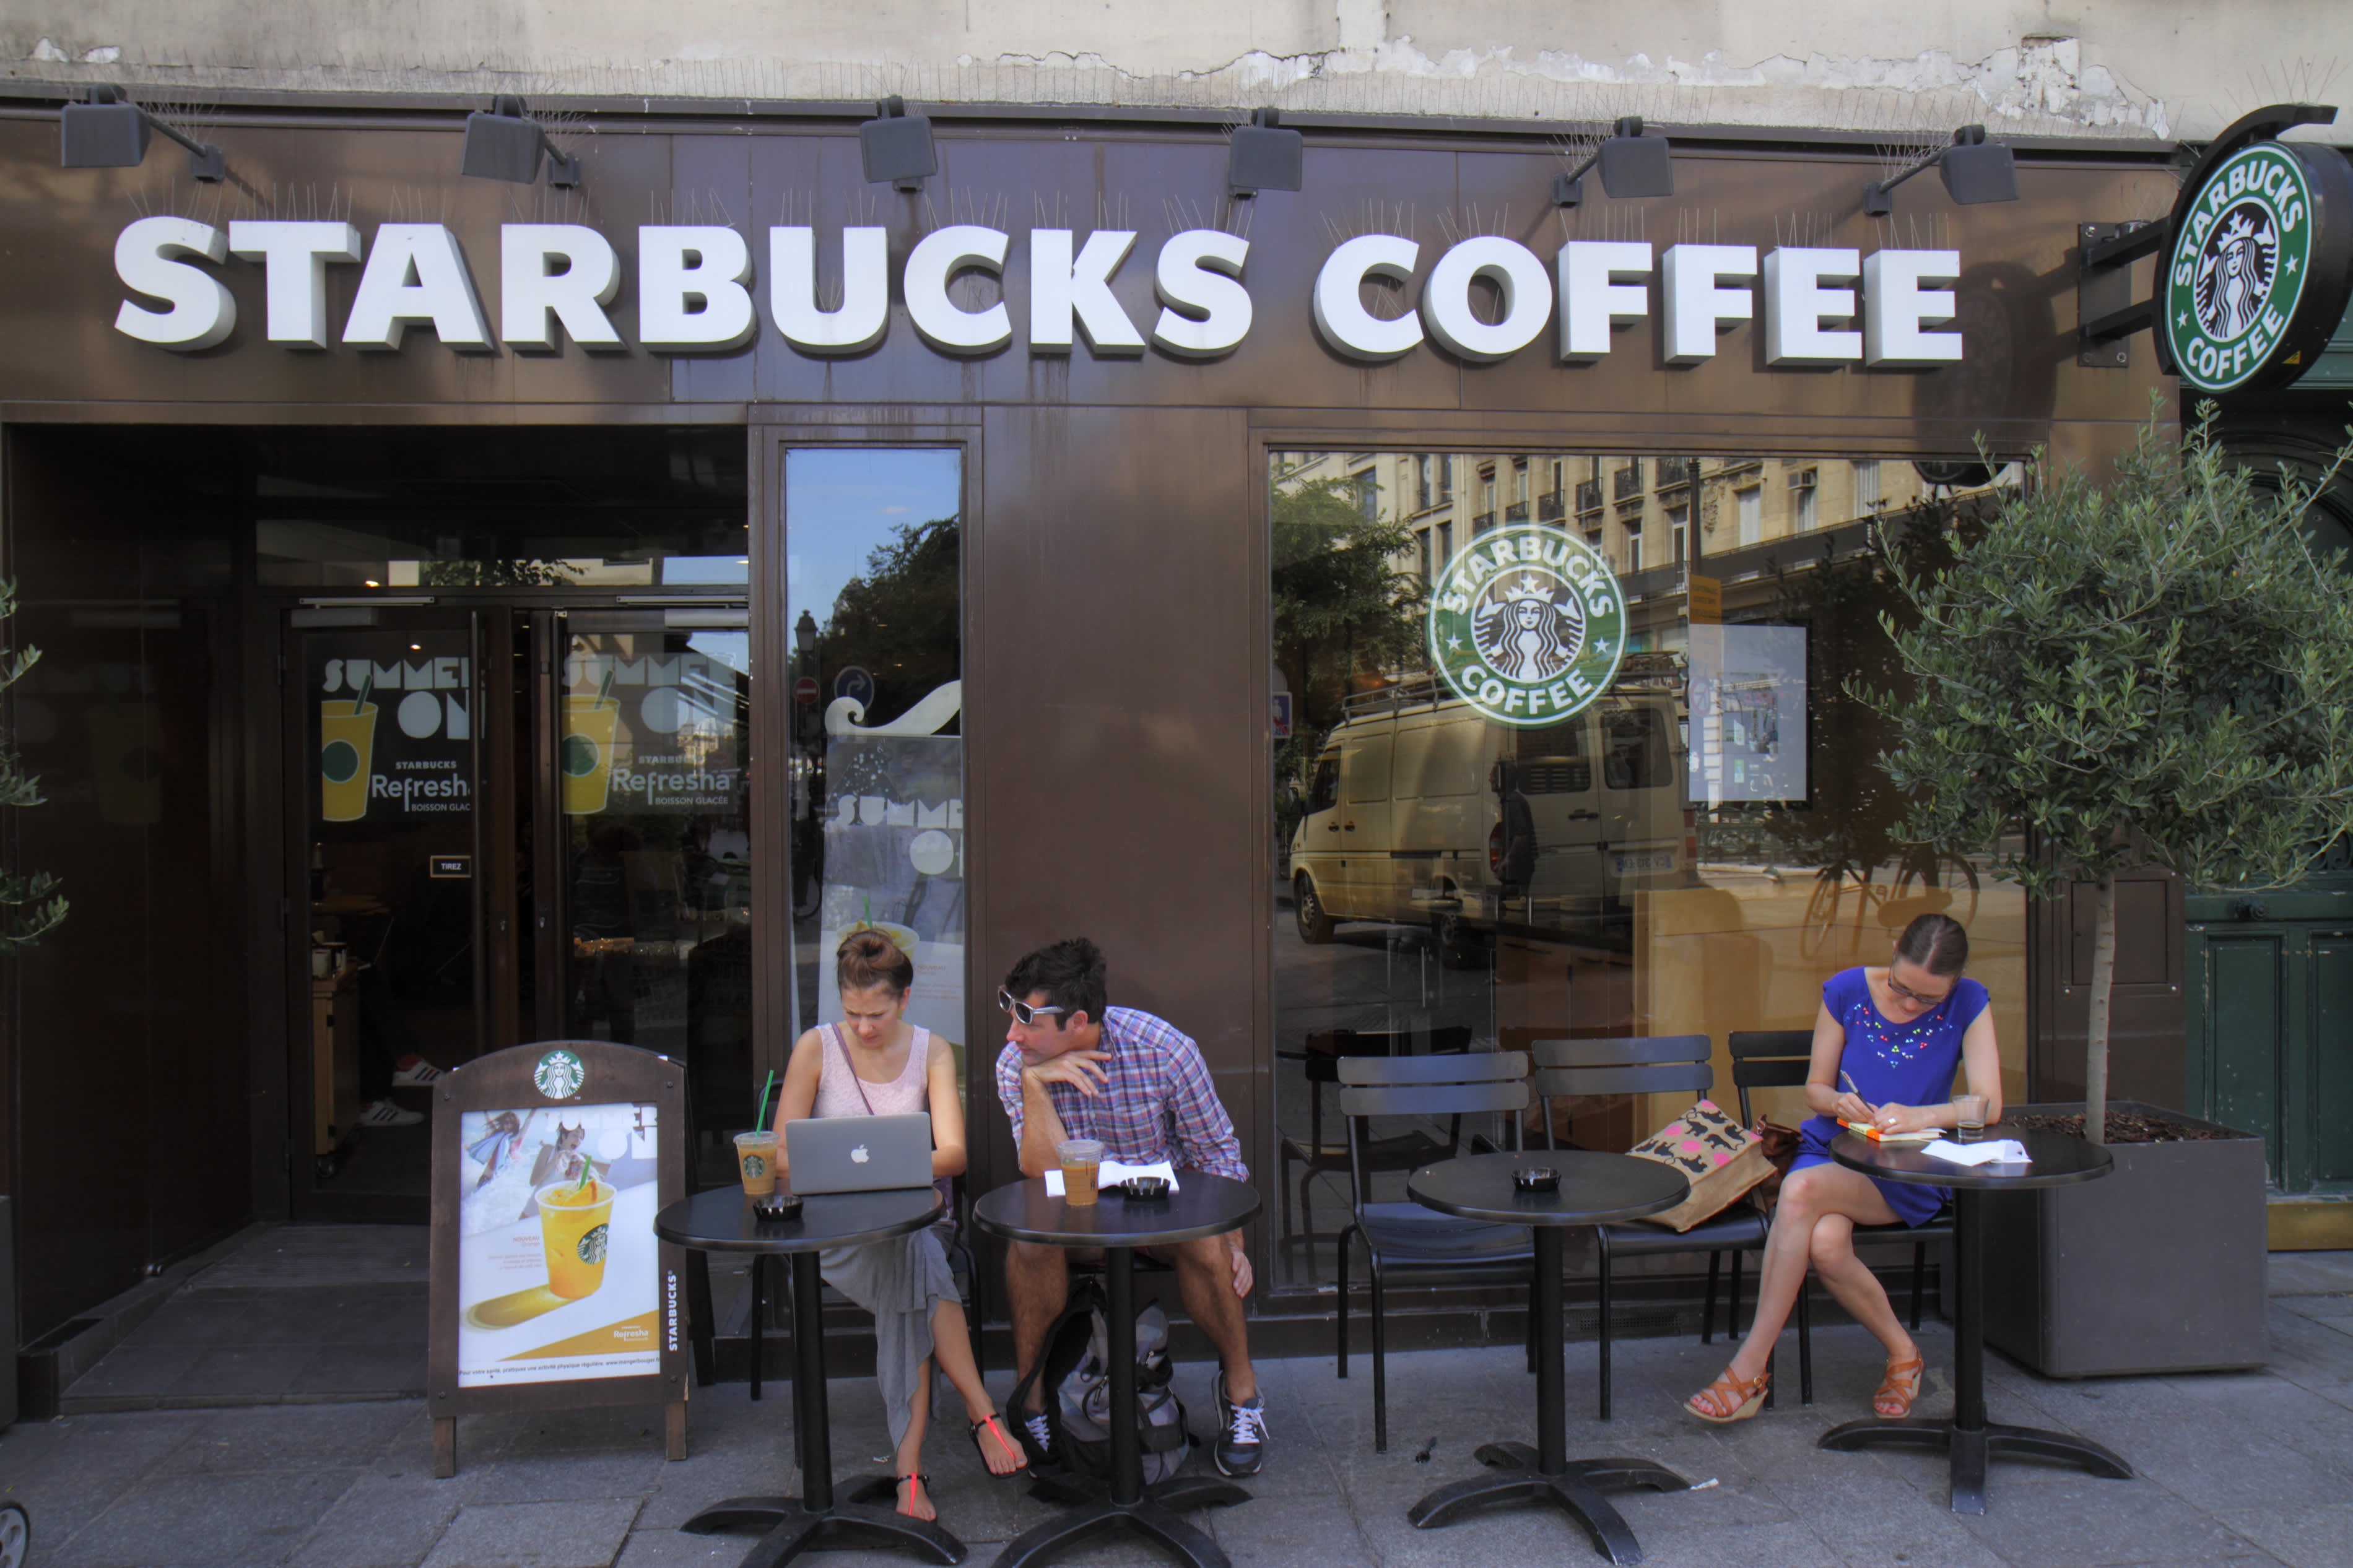 A recent EU court ruling on Starbucks could have implications for firms like Apple